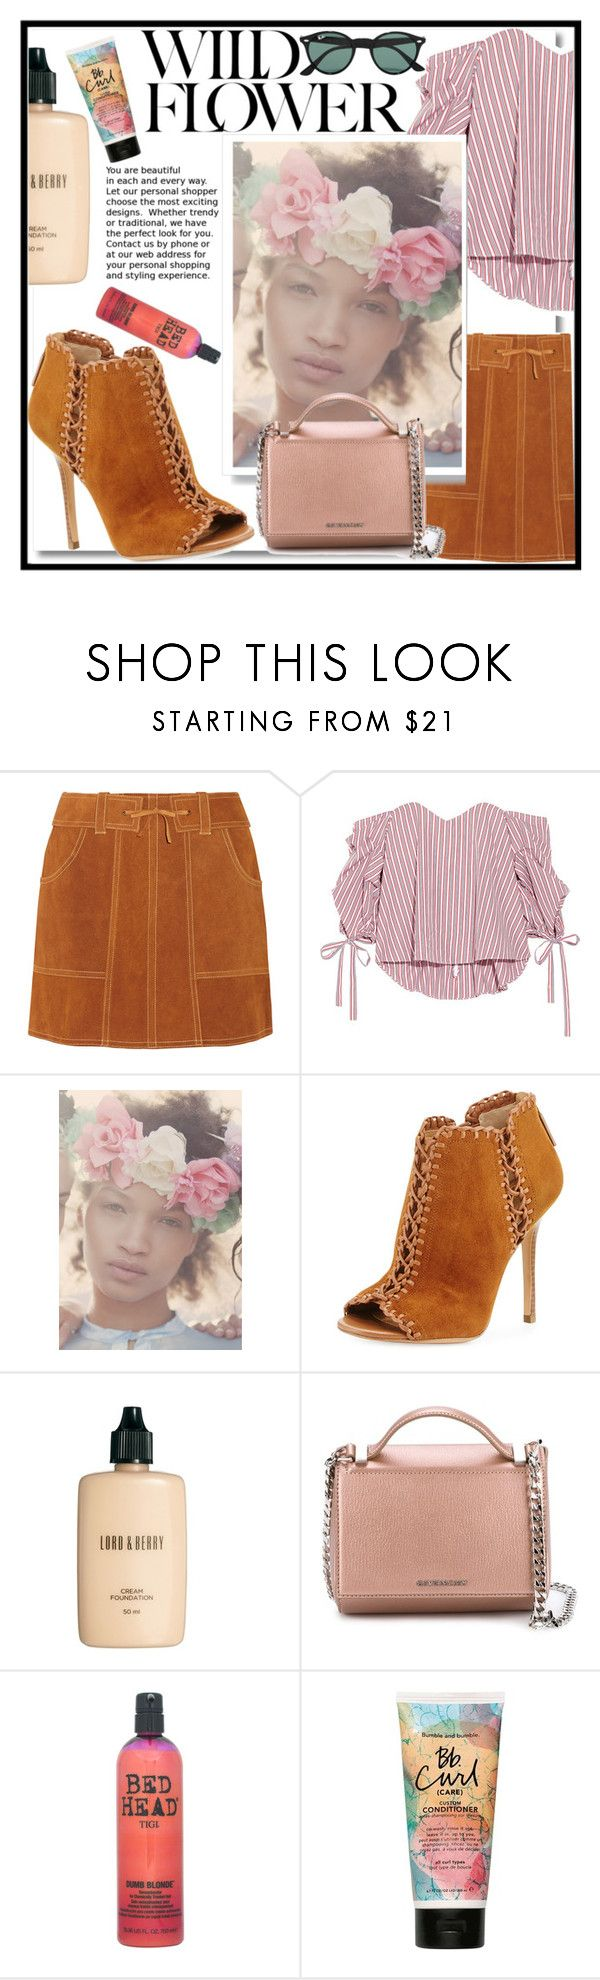 """""""Di Real Snapchat Flower Head Piece Filter II"""" by rivlyb ❤ liked on Polyvore featuring Anna Sui, Caroline Constas, Vox Populi, Michael Kors, Lord & Berry, Givenchy, TIGI, Bumble and bumble and Ray-Ban"""